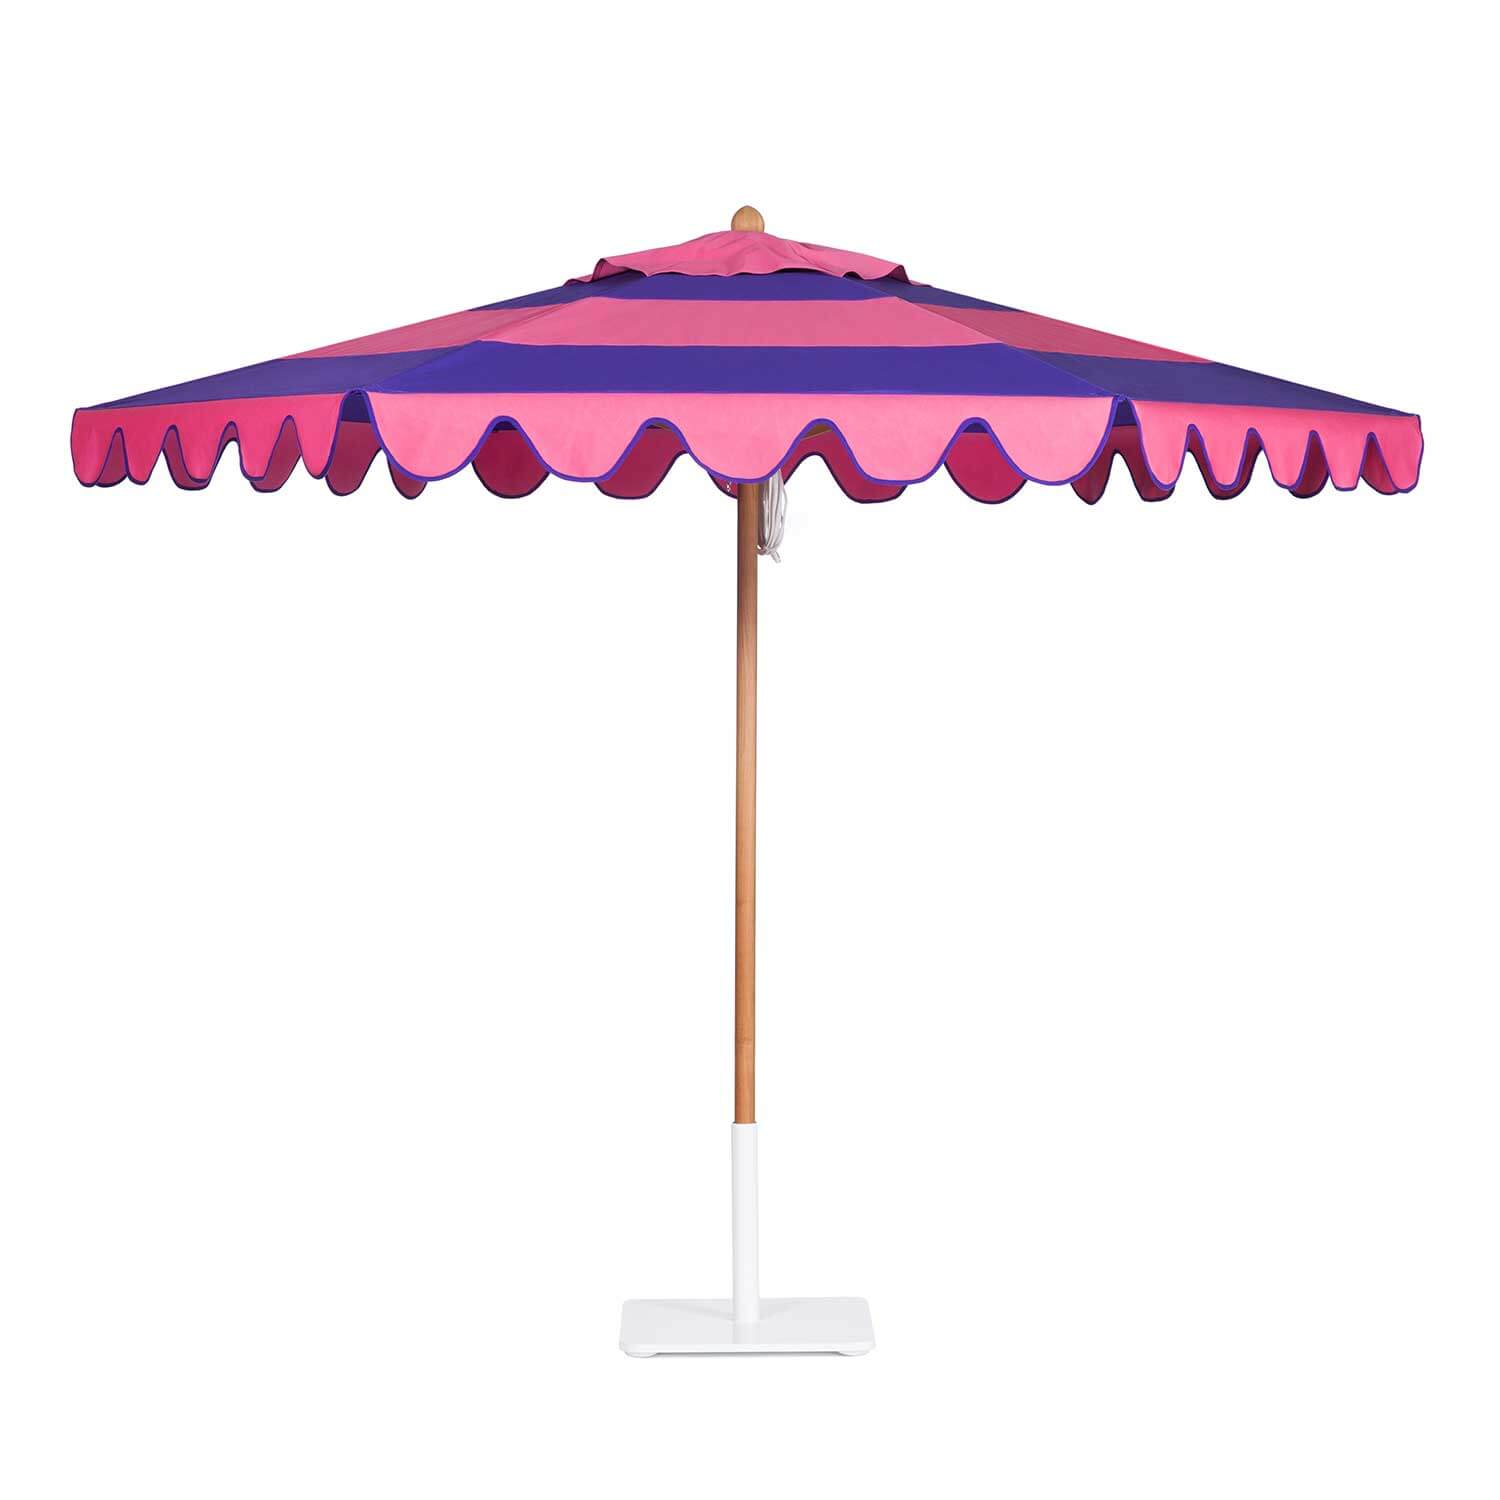 Tropical Pink / Concord Umbrella Image